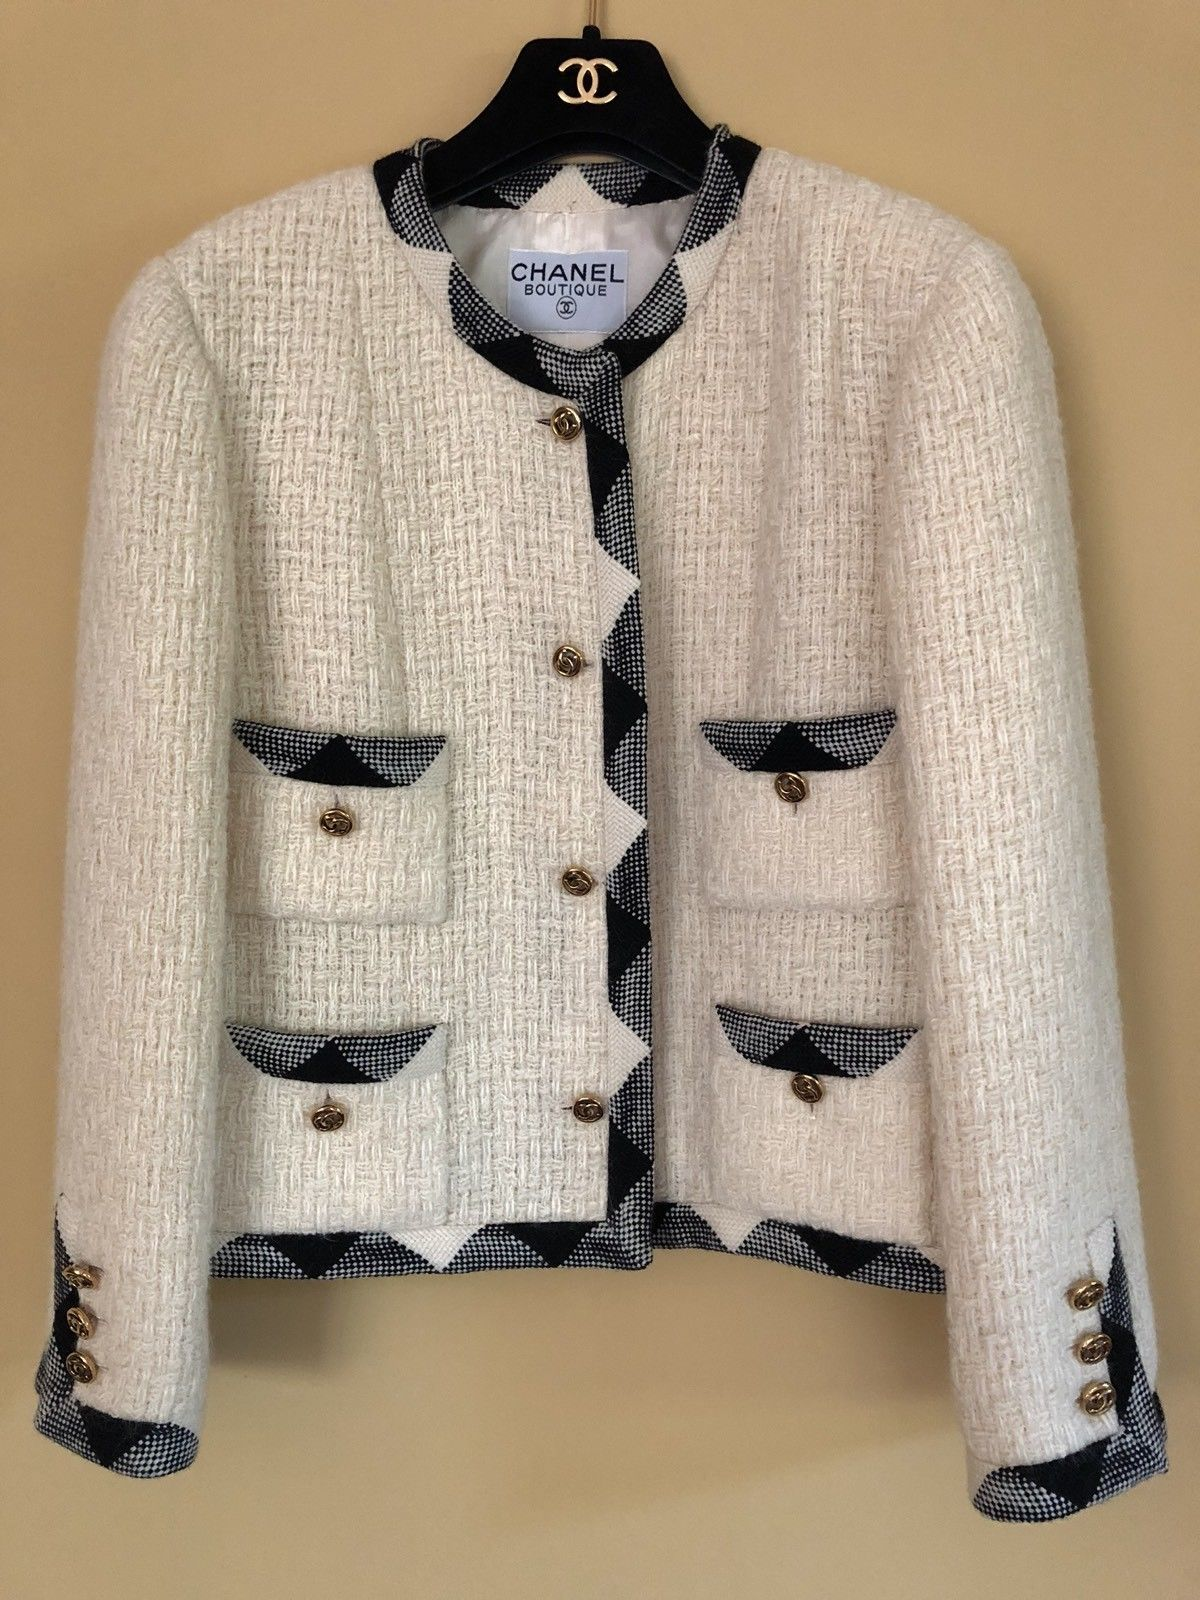 3848a6975 CHANEL tweed jacket Cream Black trim CC Logo Buttons. Sz 42 | eBay